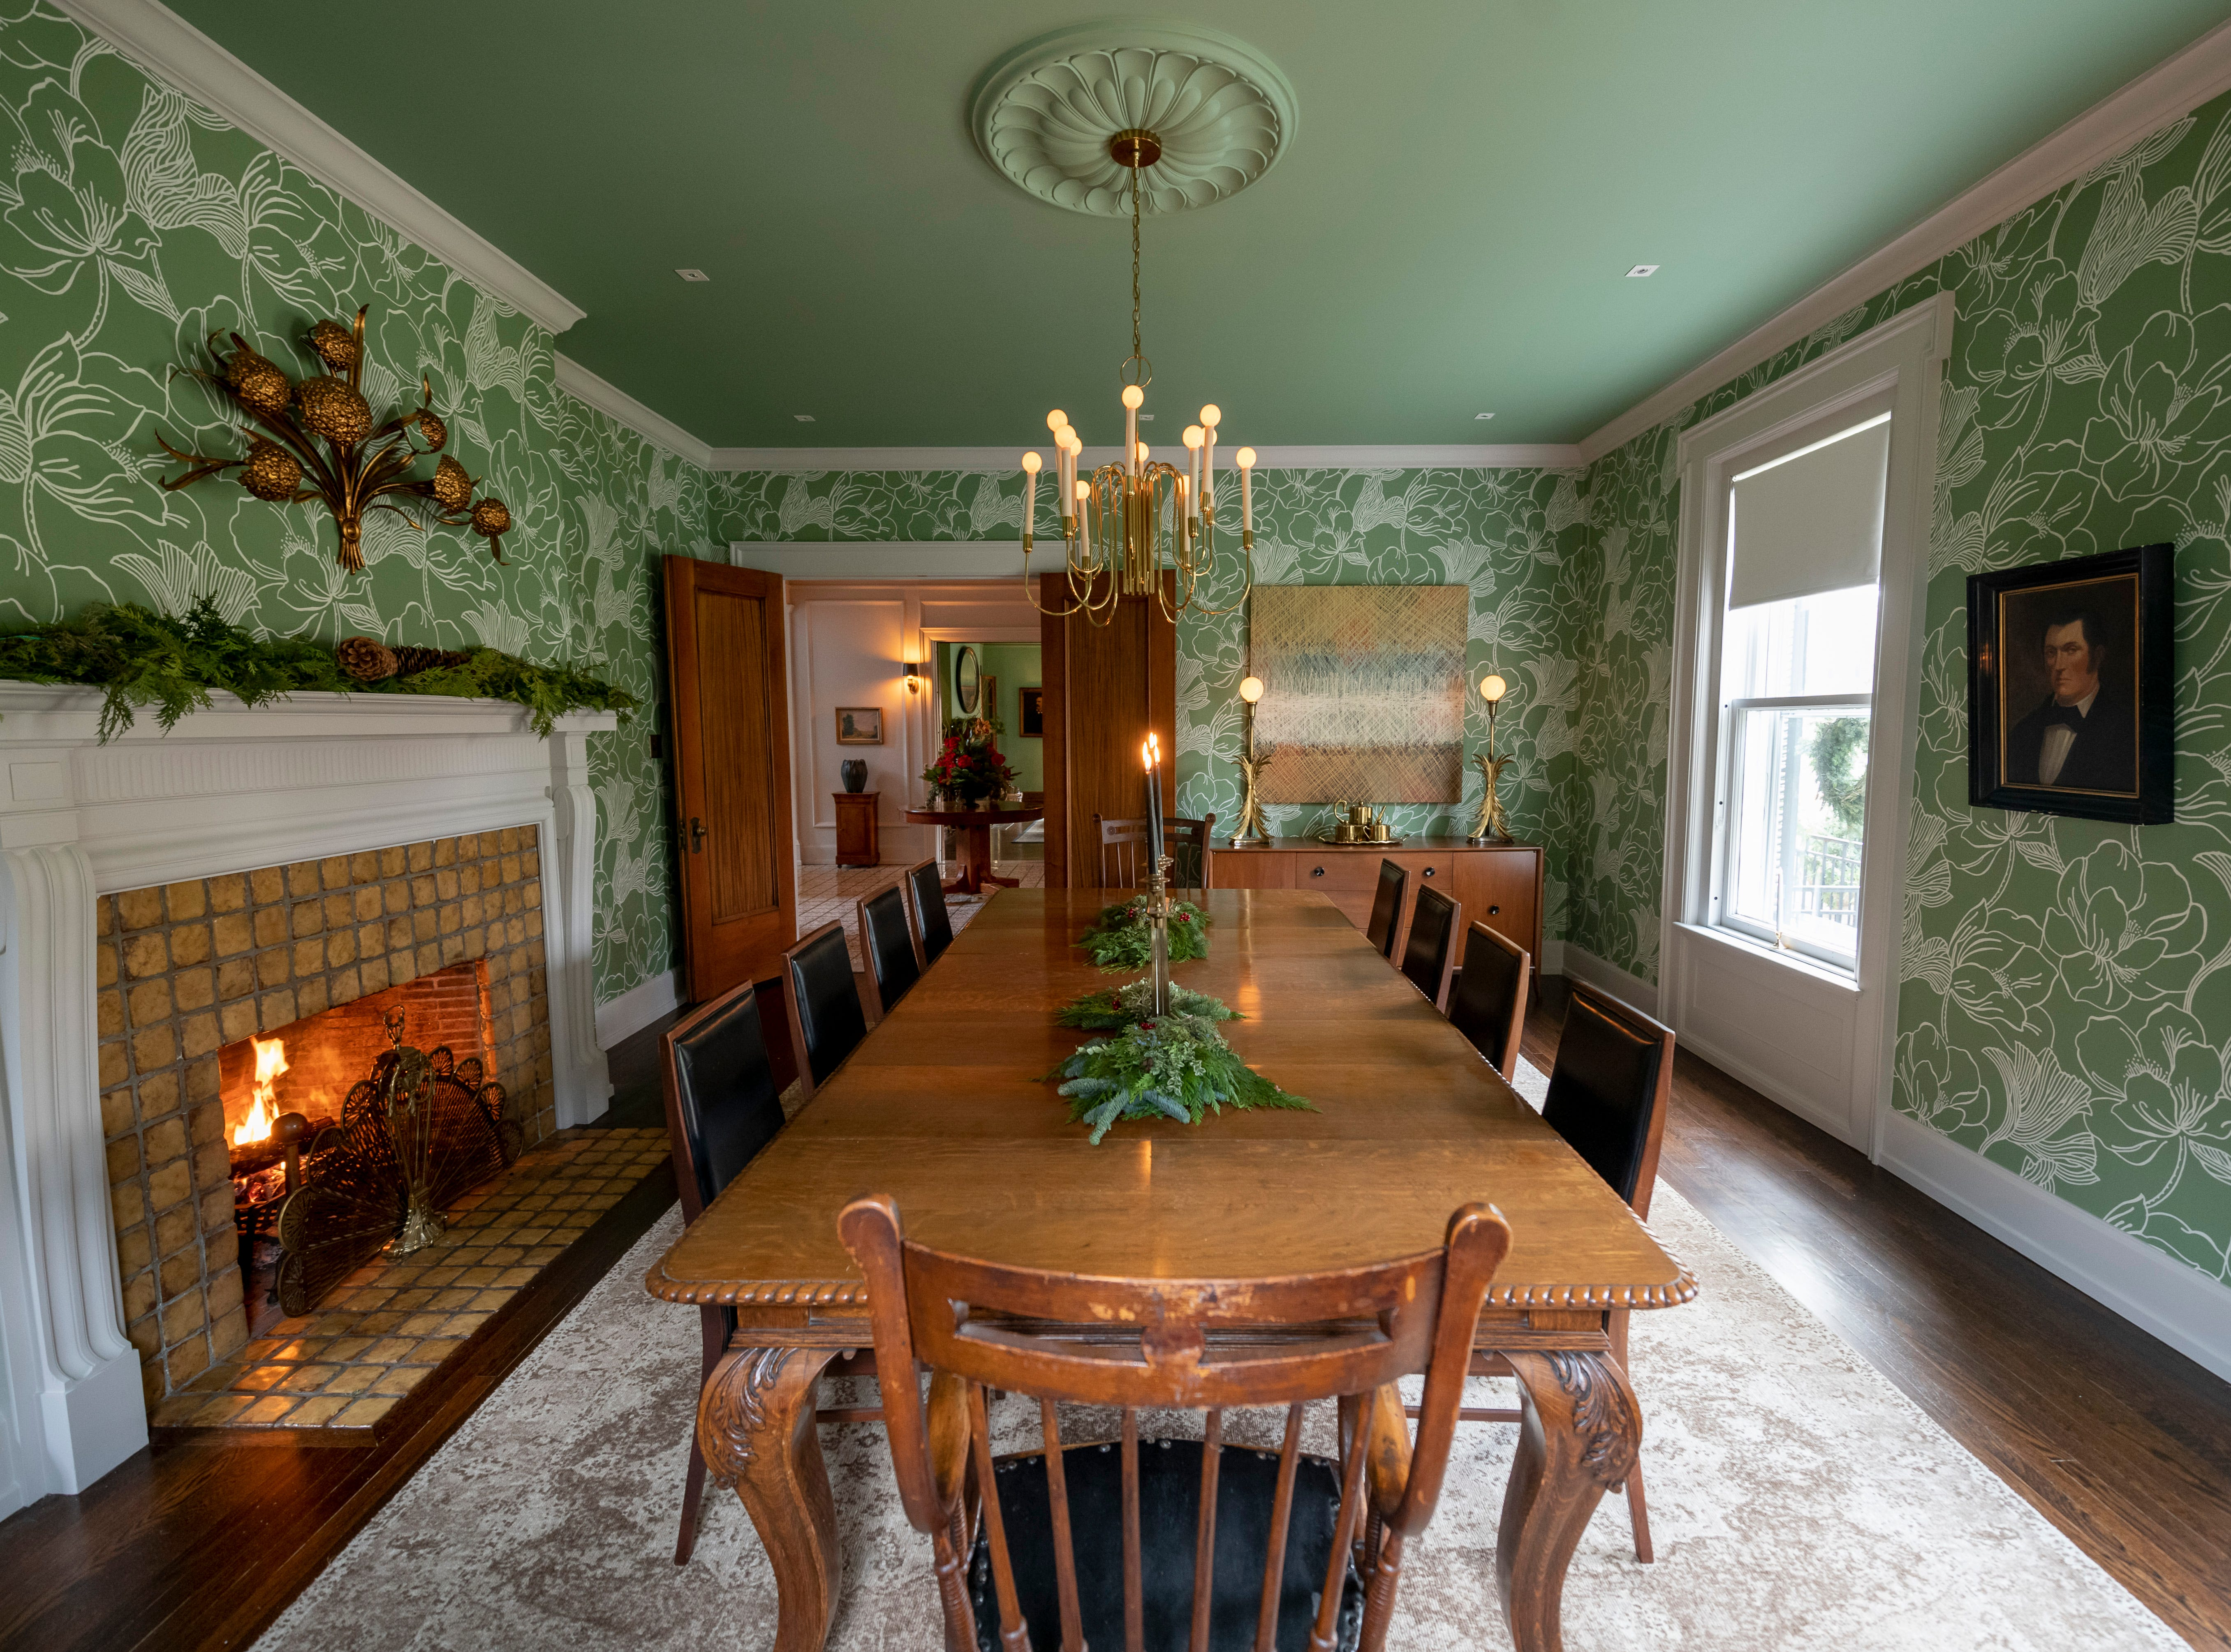 The dining room of the home of Jake Whitman and Matt Godlewski in Indian Village, in Detroit, November 19, 2018.